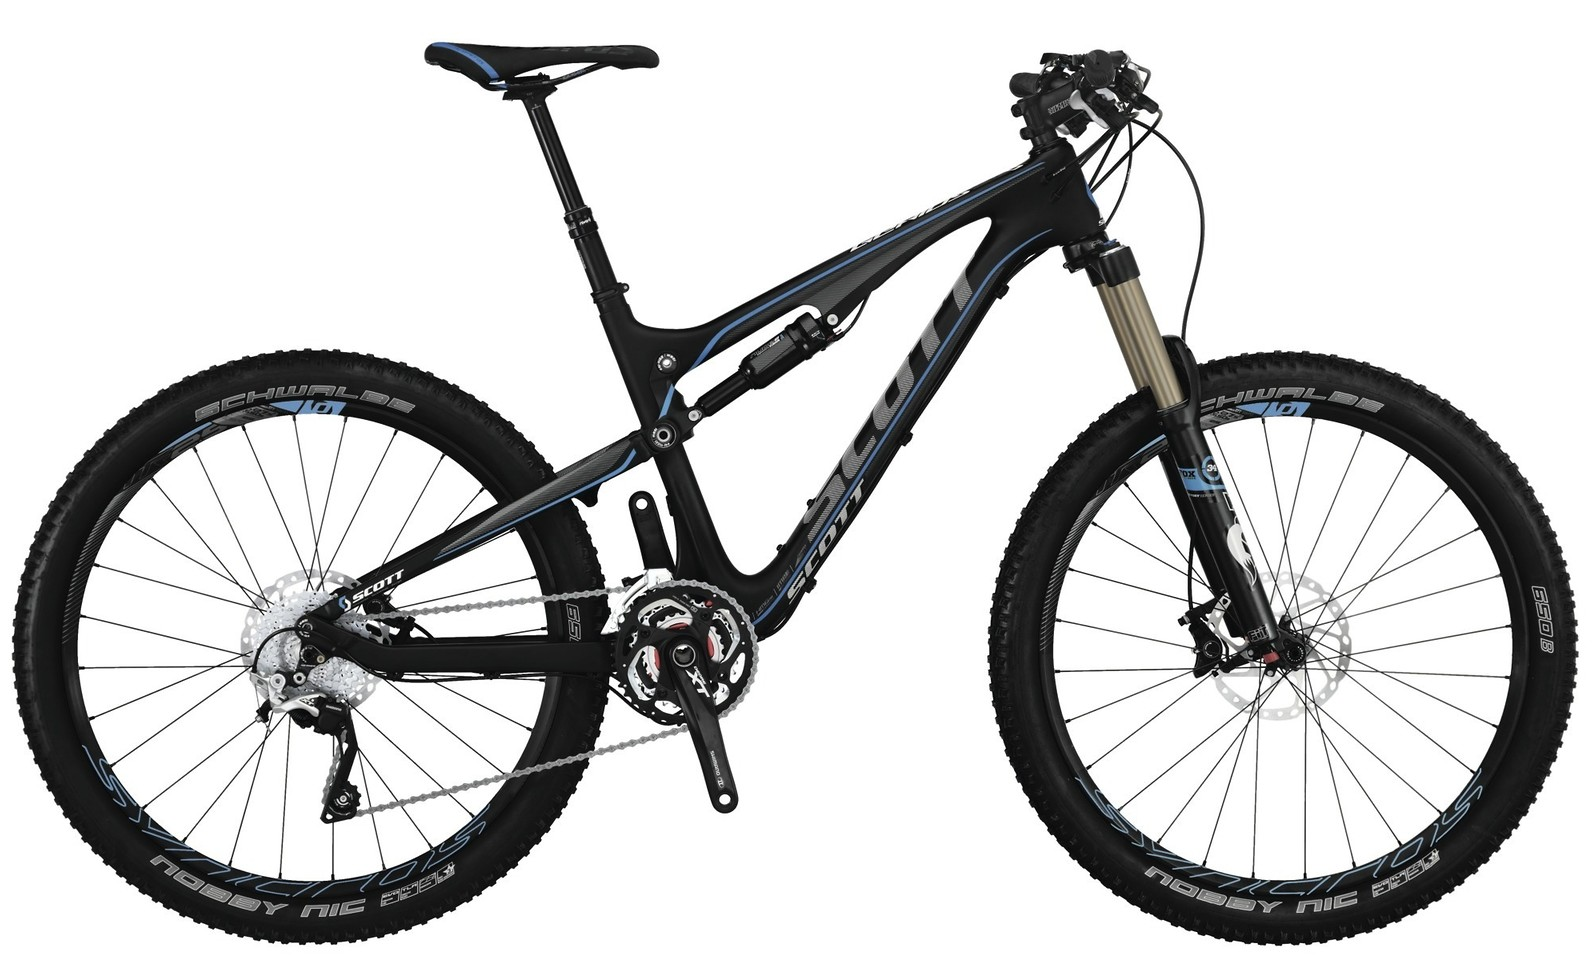 2013 Scott Genius 710 Bike Reviews Comparisons Specs